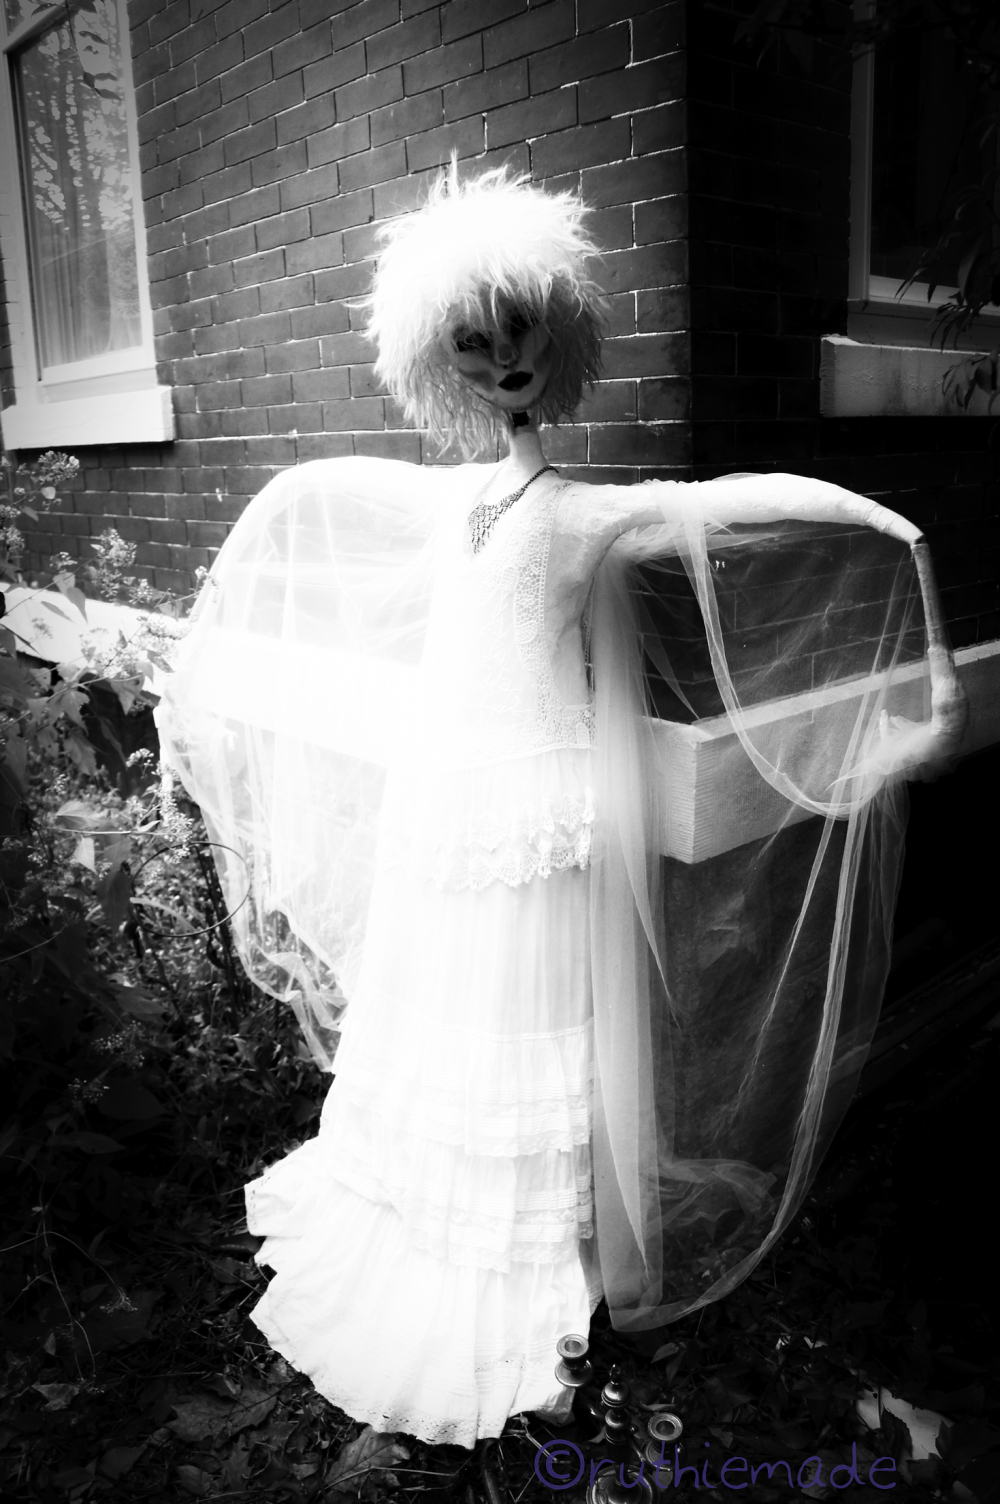 Ghostly Woman